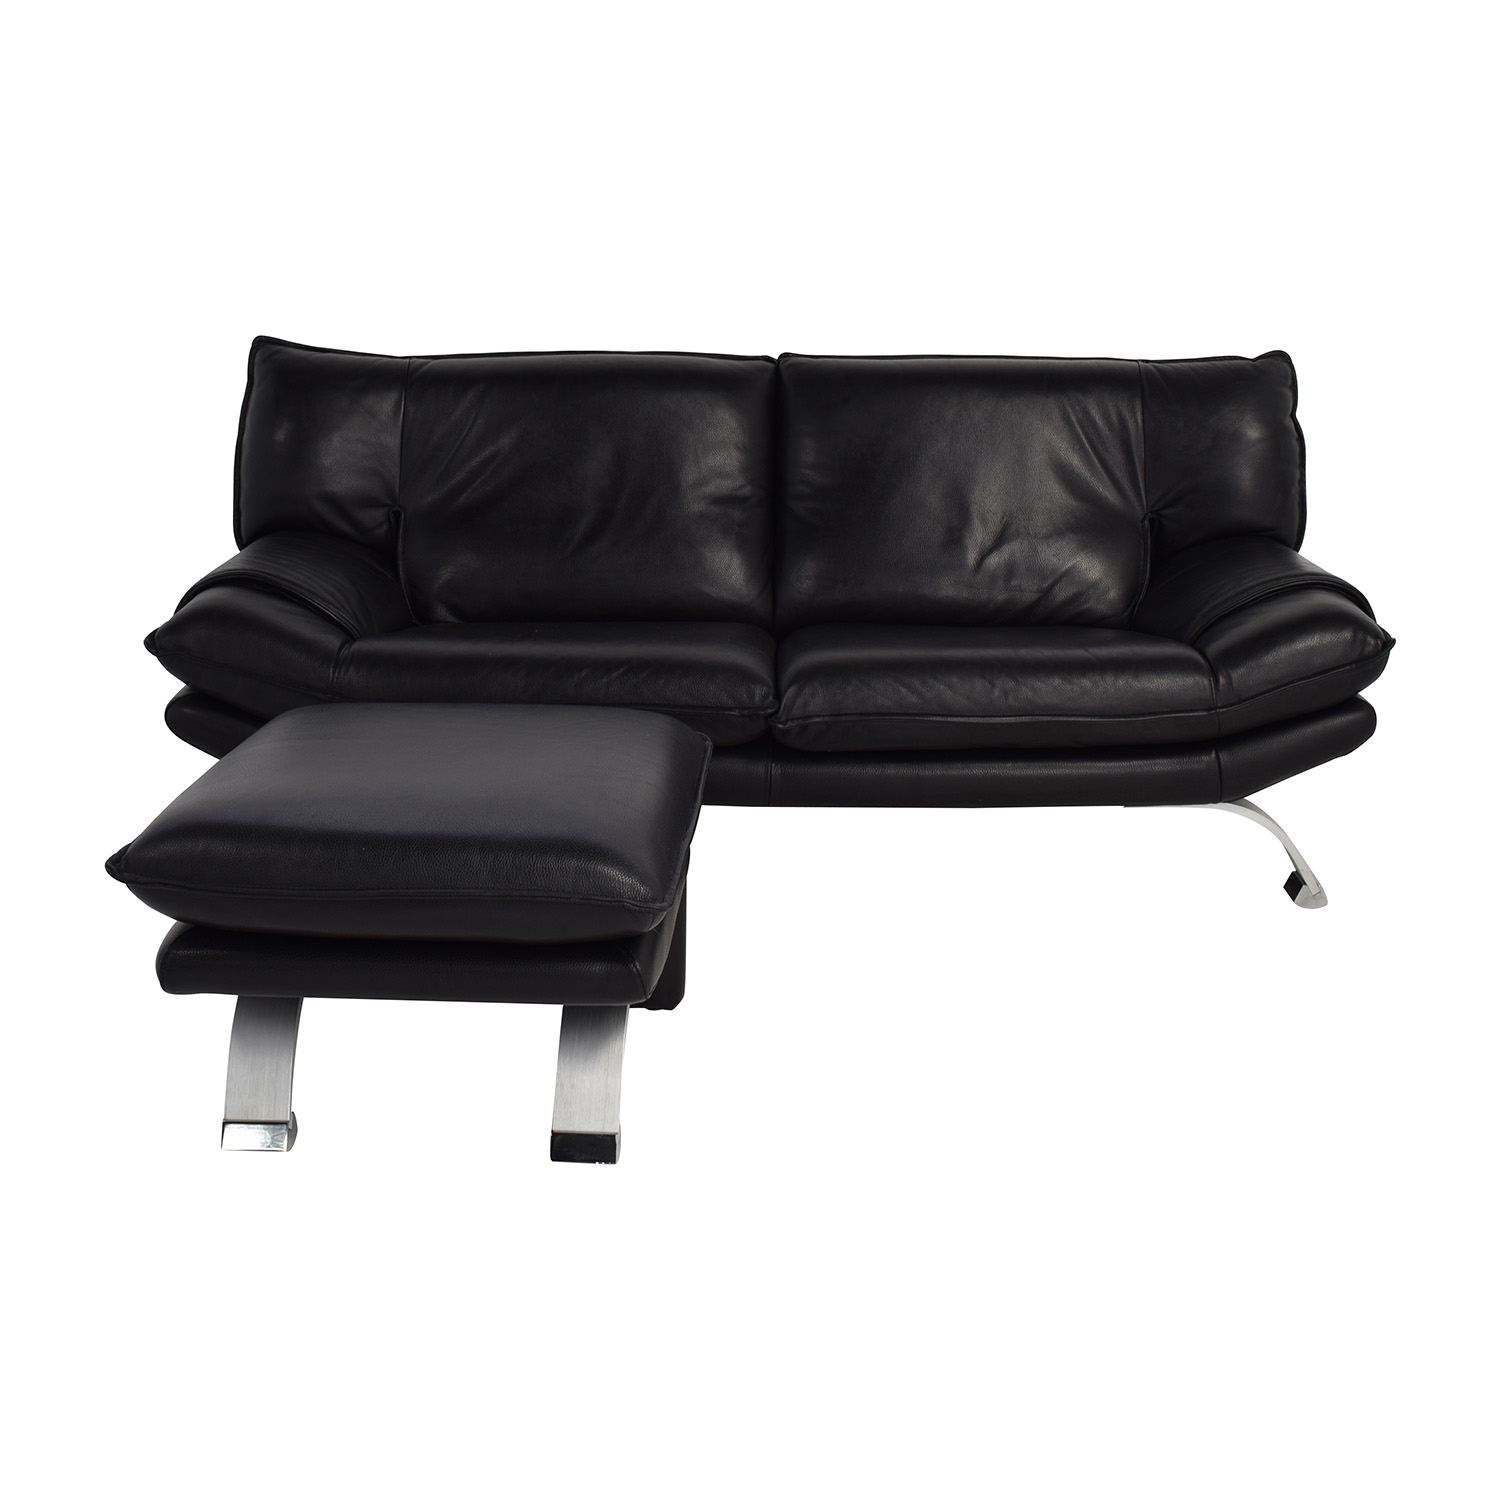 Nicolletti Nicolletti Black Leather Sofa and Ottoman for sale